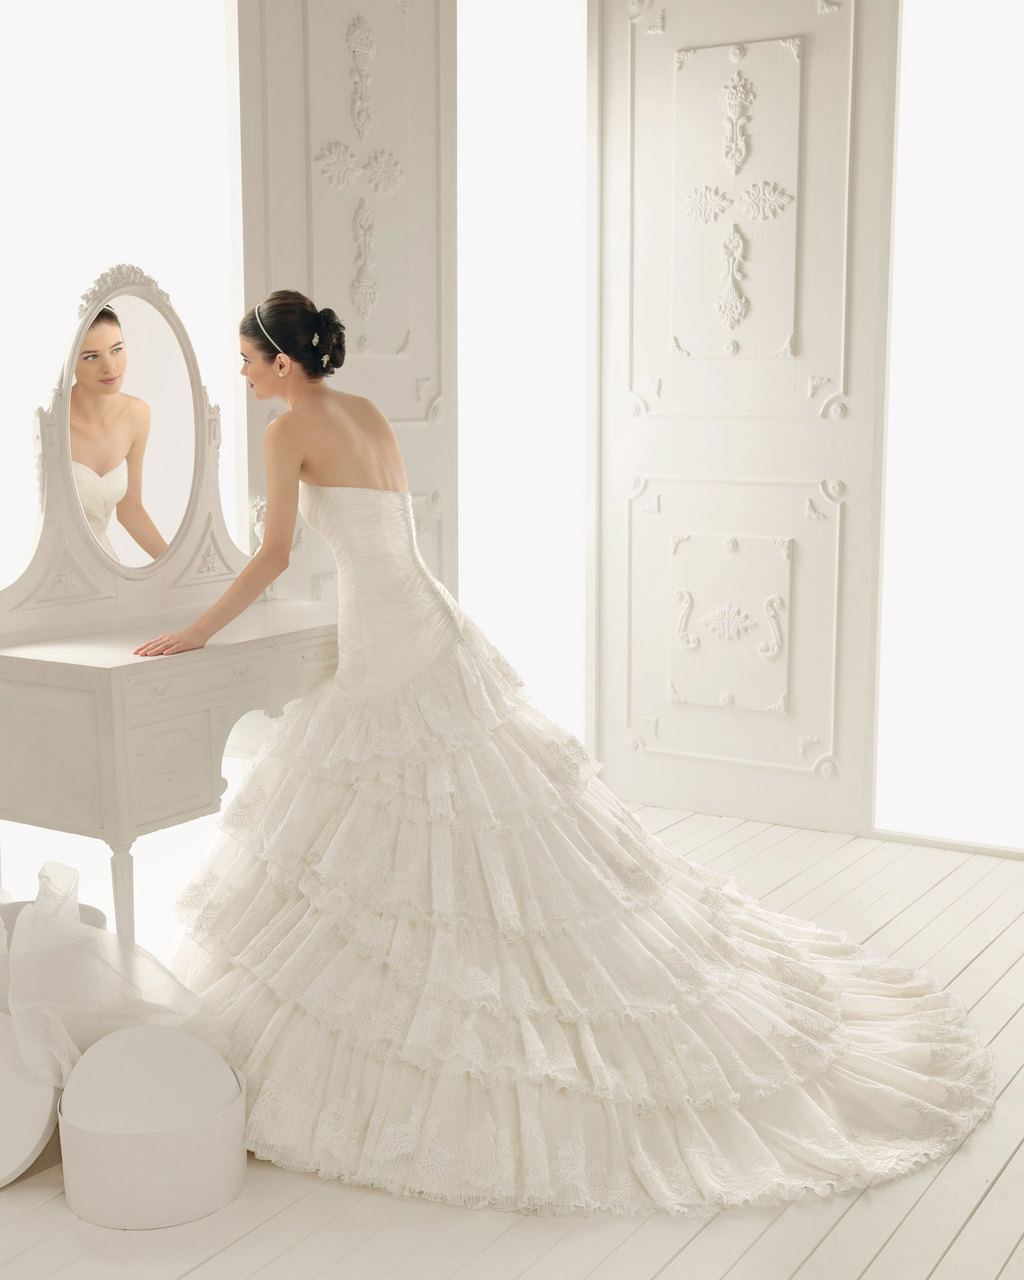 2013-wedding-dress-aire-barcelona-bridal-gowns-reflejo.full